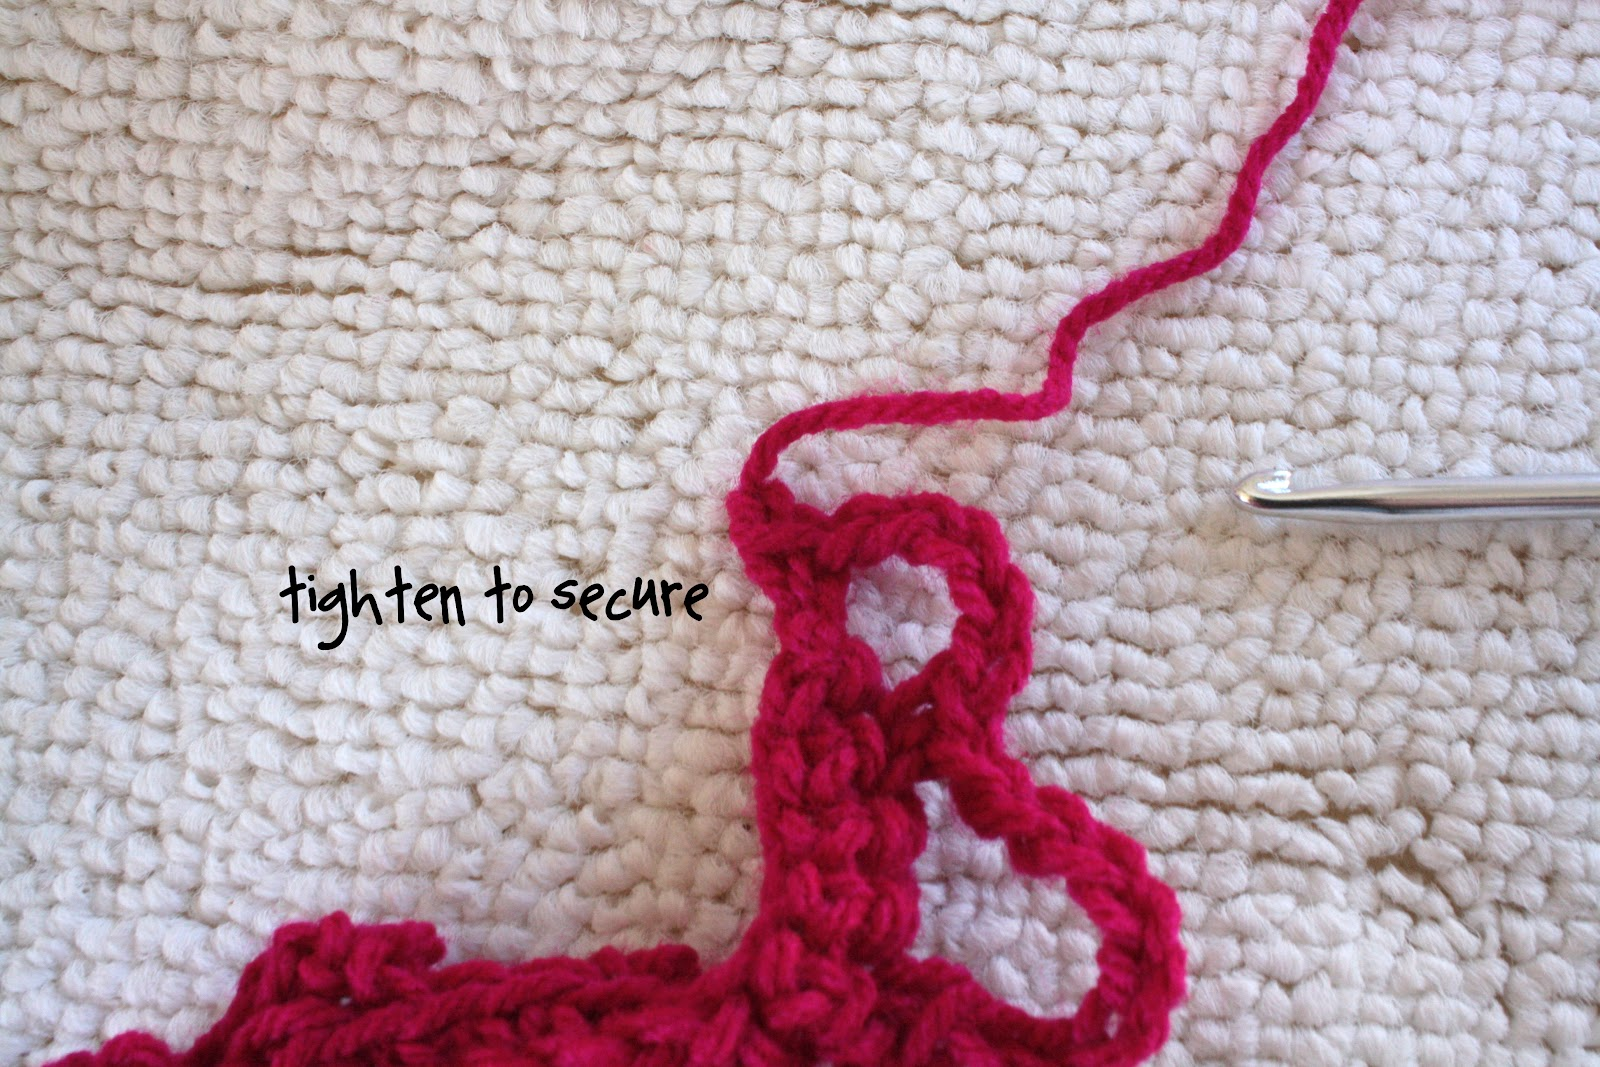 Crochet Fasten Off : How To Crochet a Heart: {Crochet Basics} Slip Stitch and Fastening Off